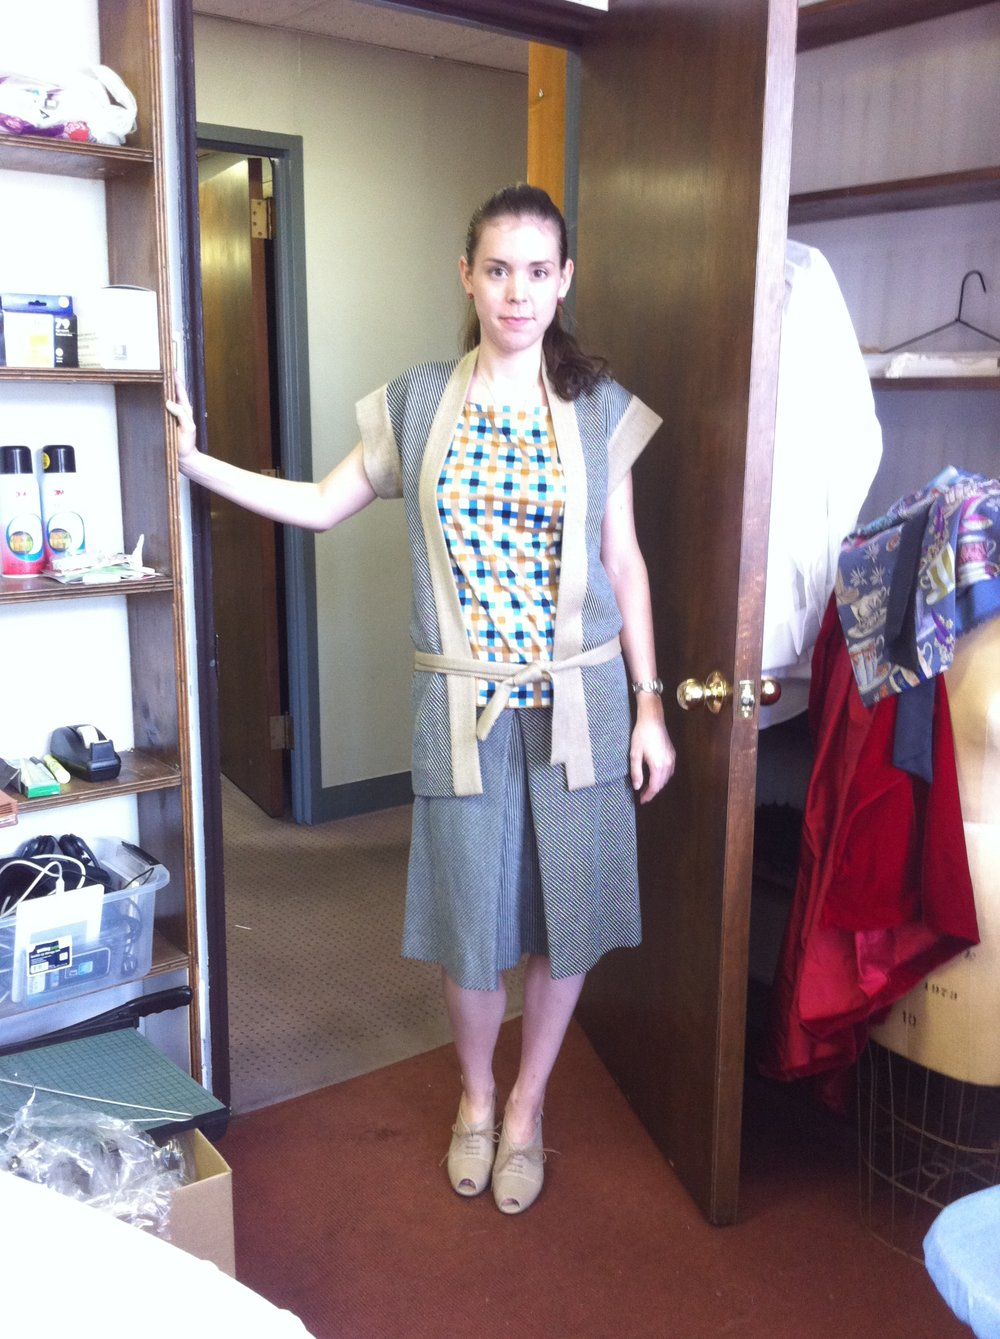 7 - Acting as a fit model for one of my favorite daytime outfits for Gatsby I helped design.jpg